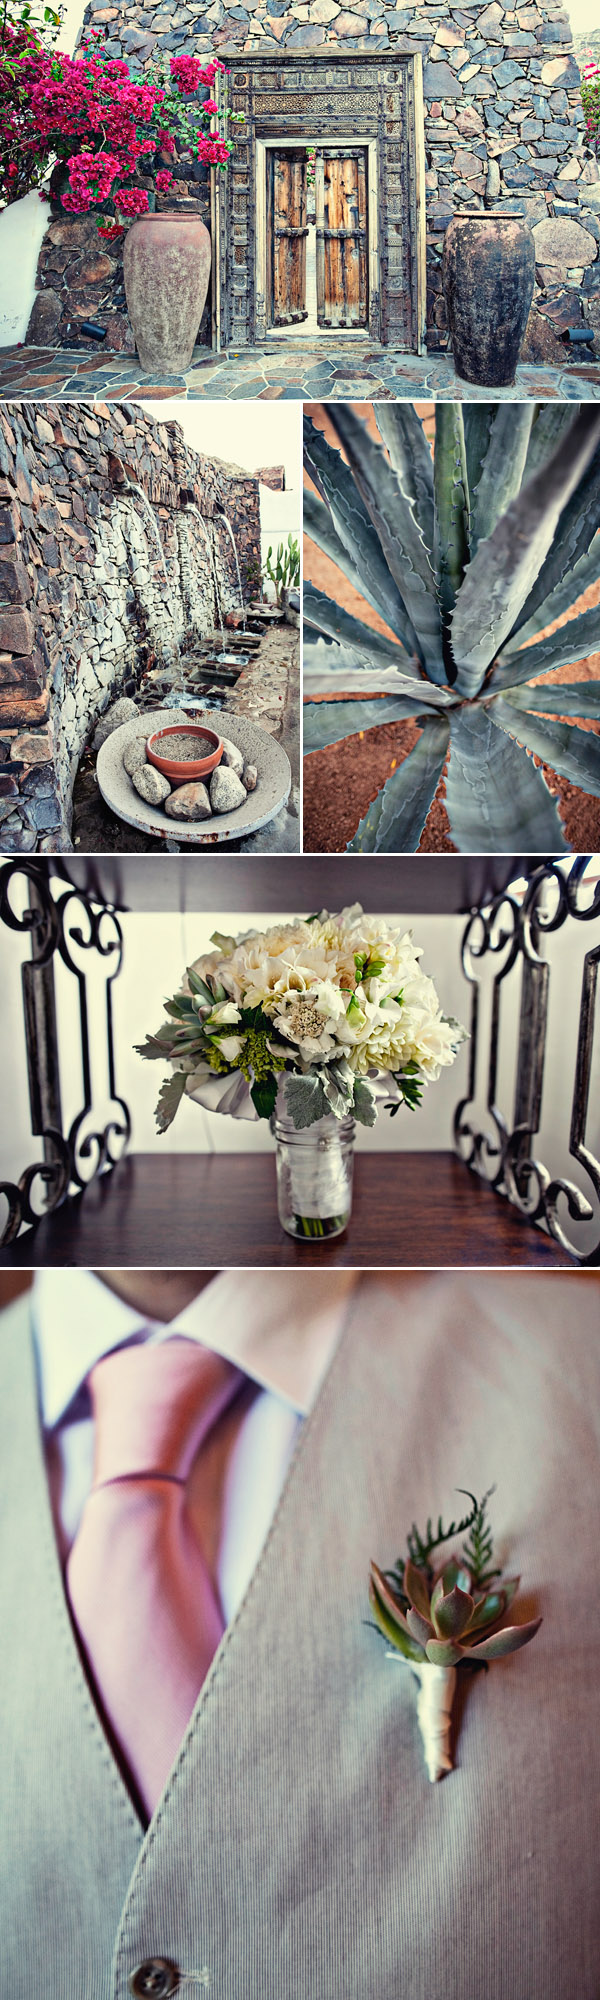 Palm Springs destination real wedding decor details, photos by Joy Marie Photography